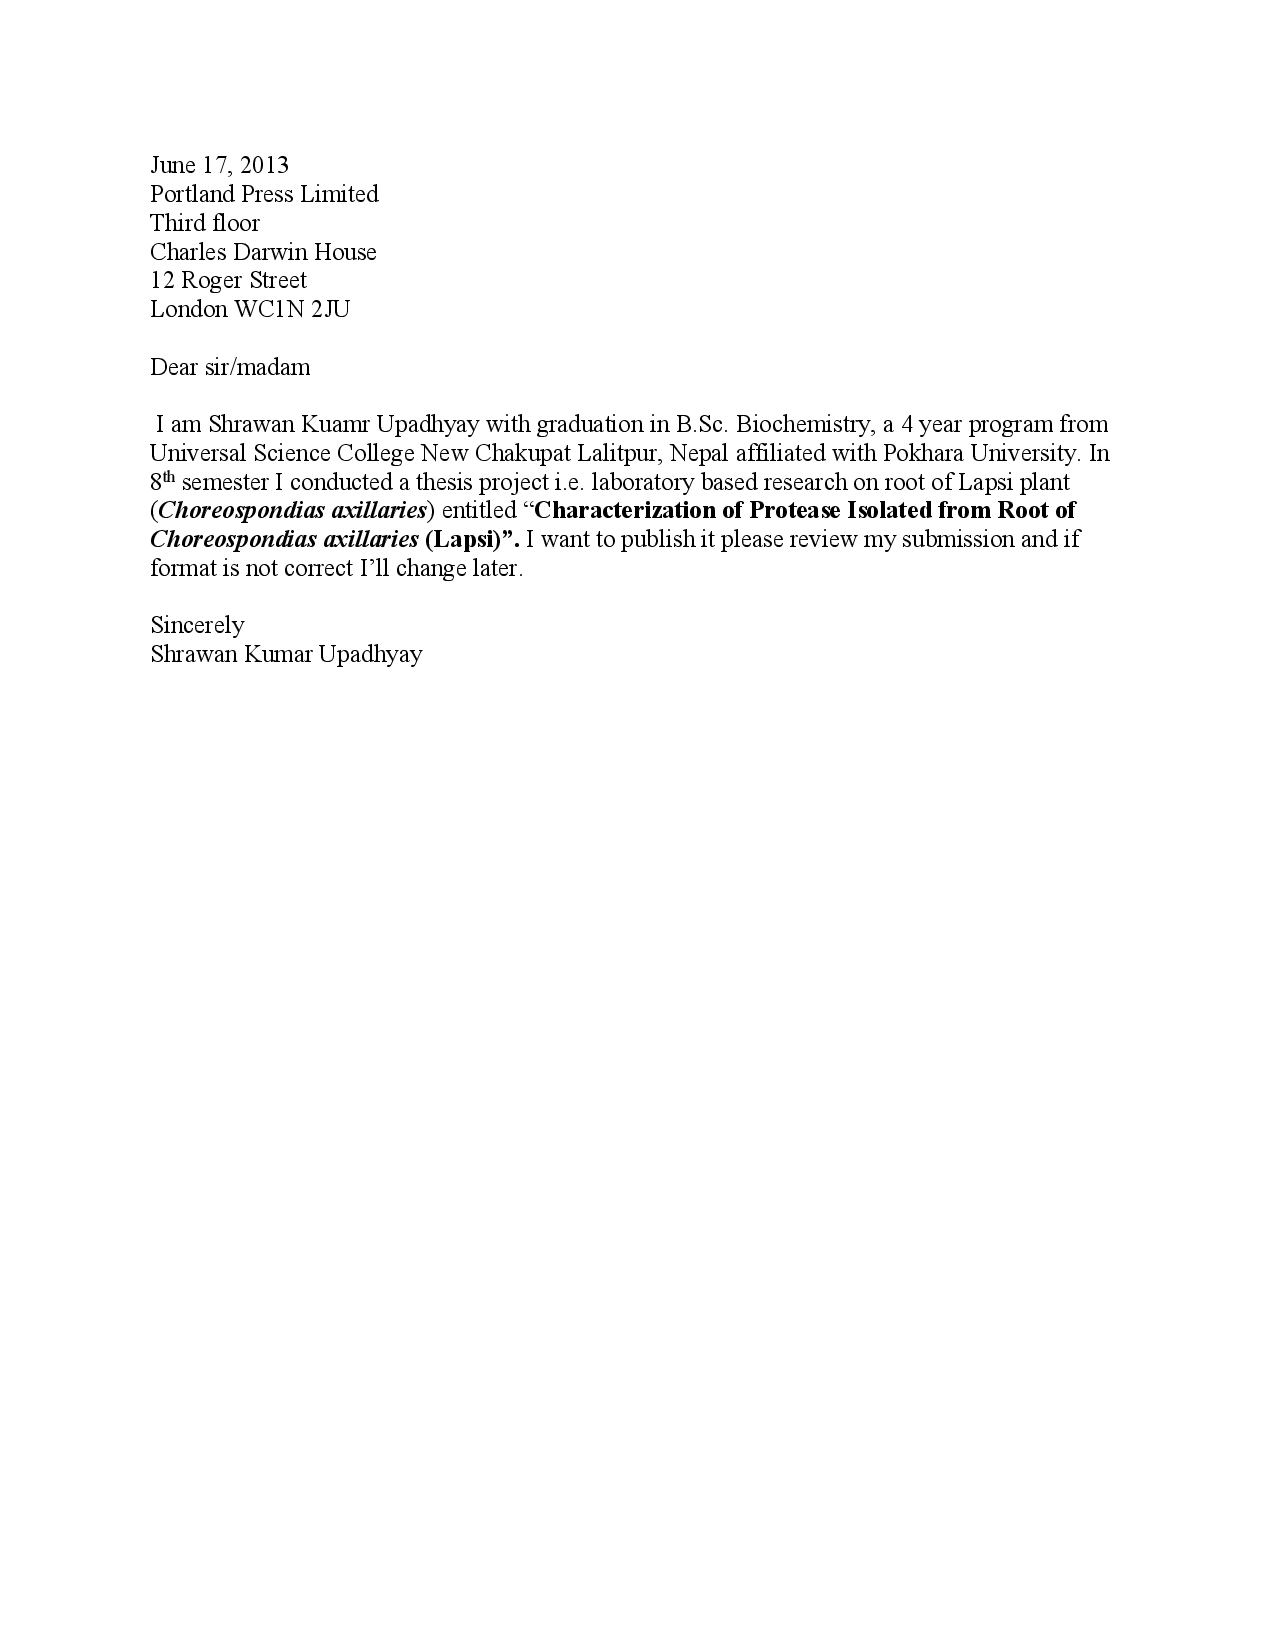 016 Cover Letter Research Paper Template For Sensational Full